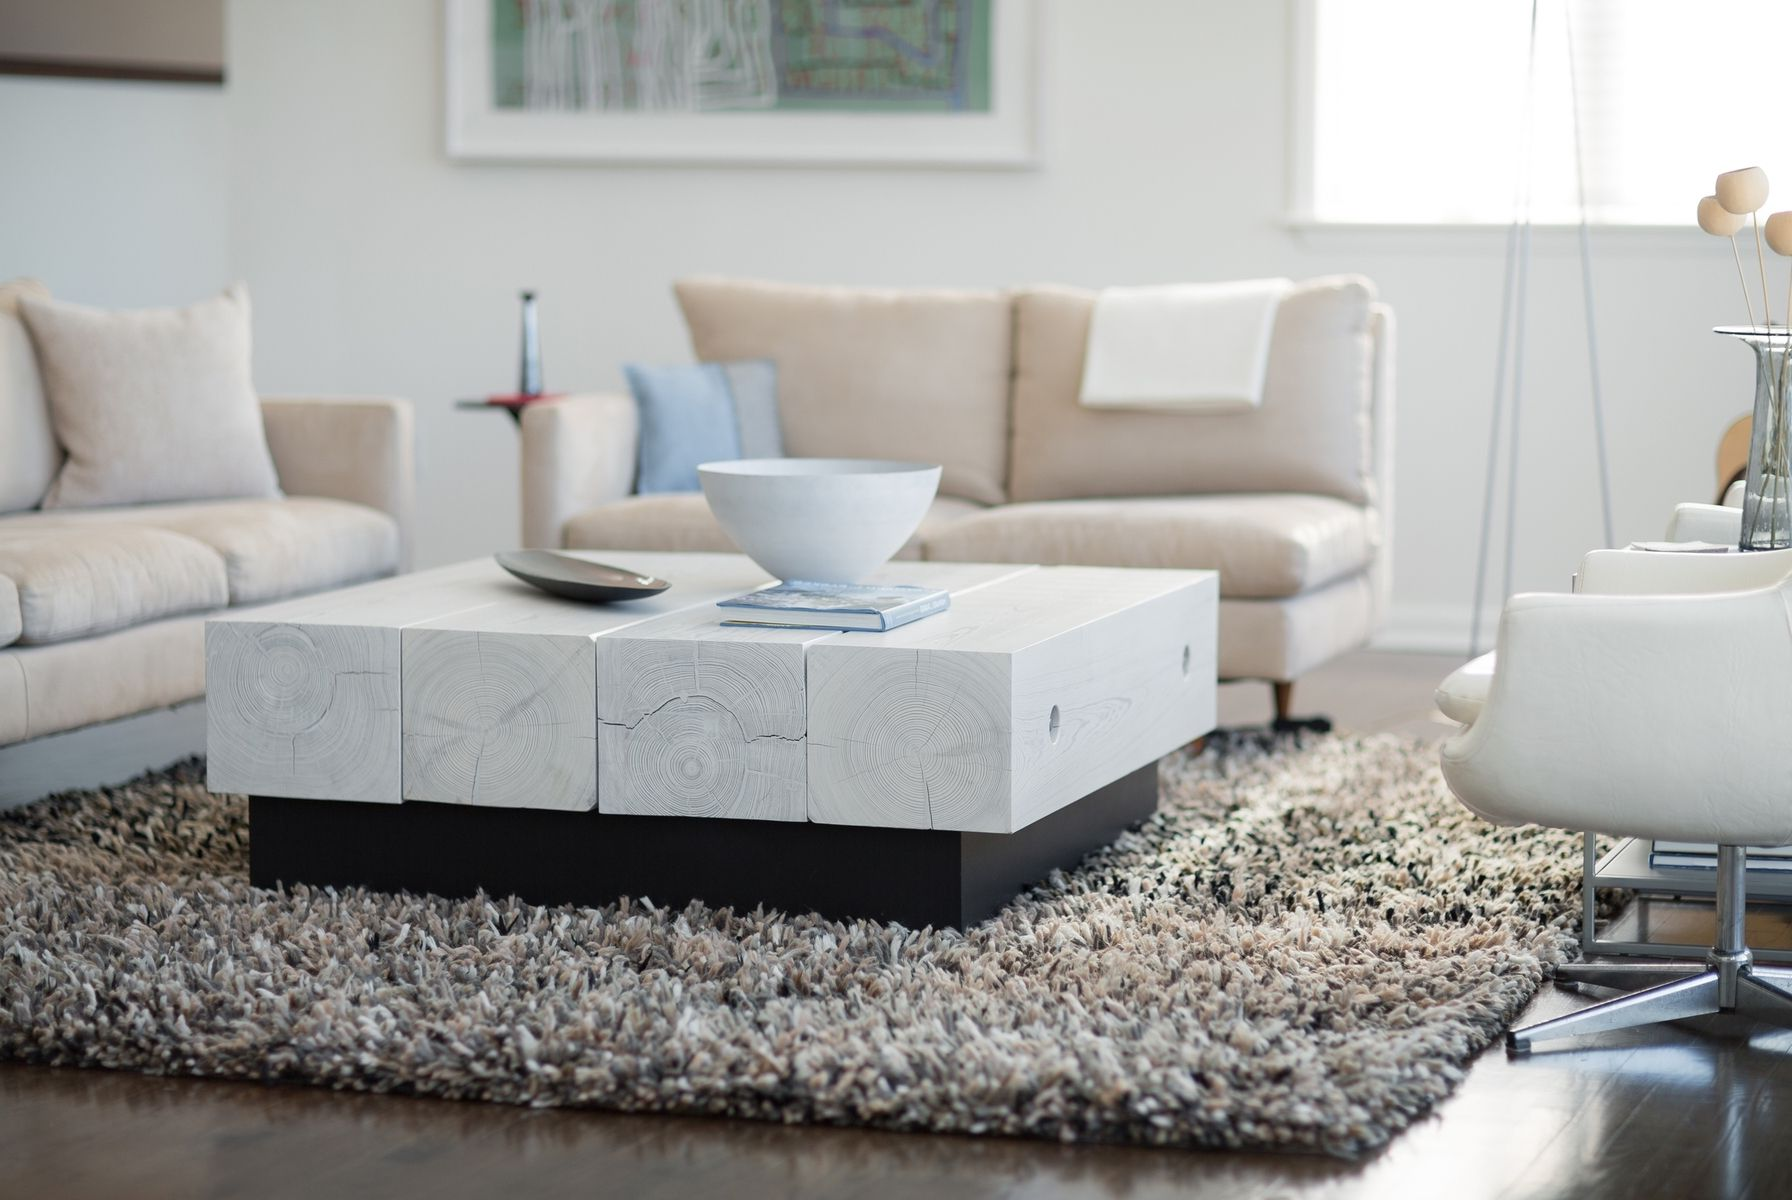 White Washed Wood Coffee Table Furniture | Roy Home Design - photo#38